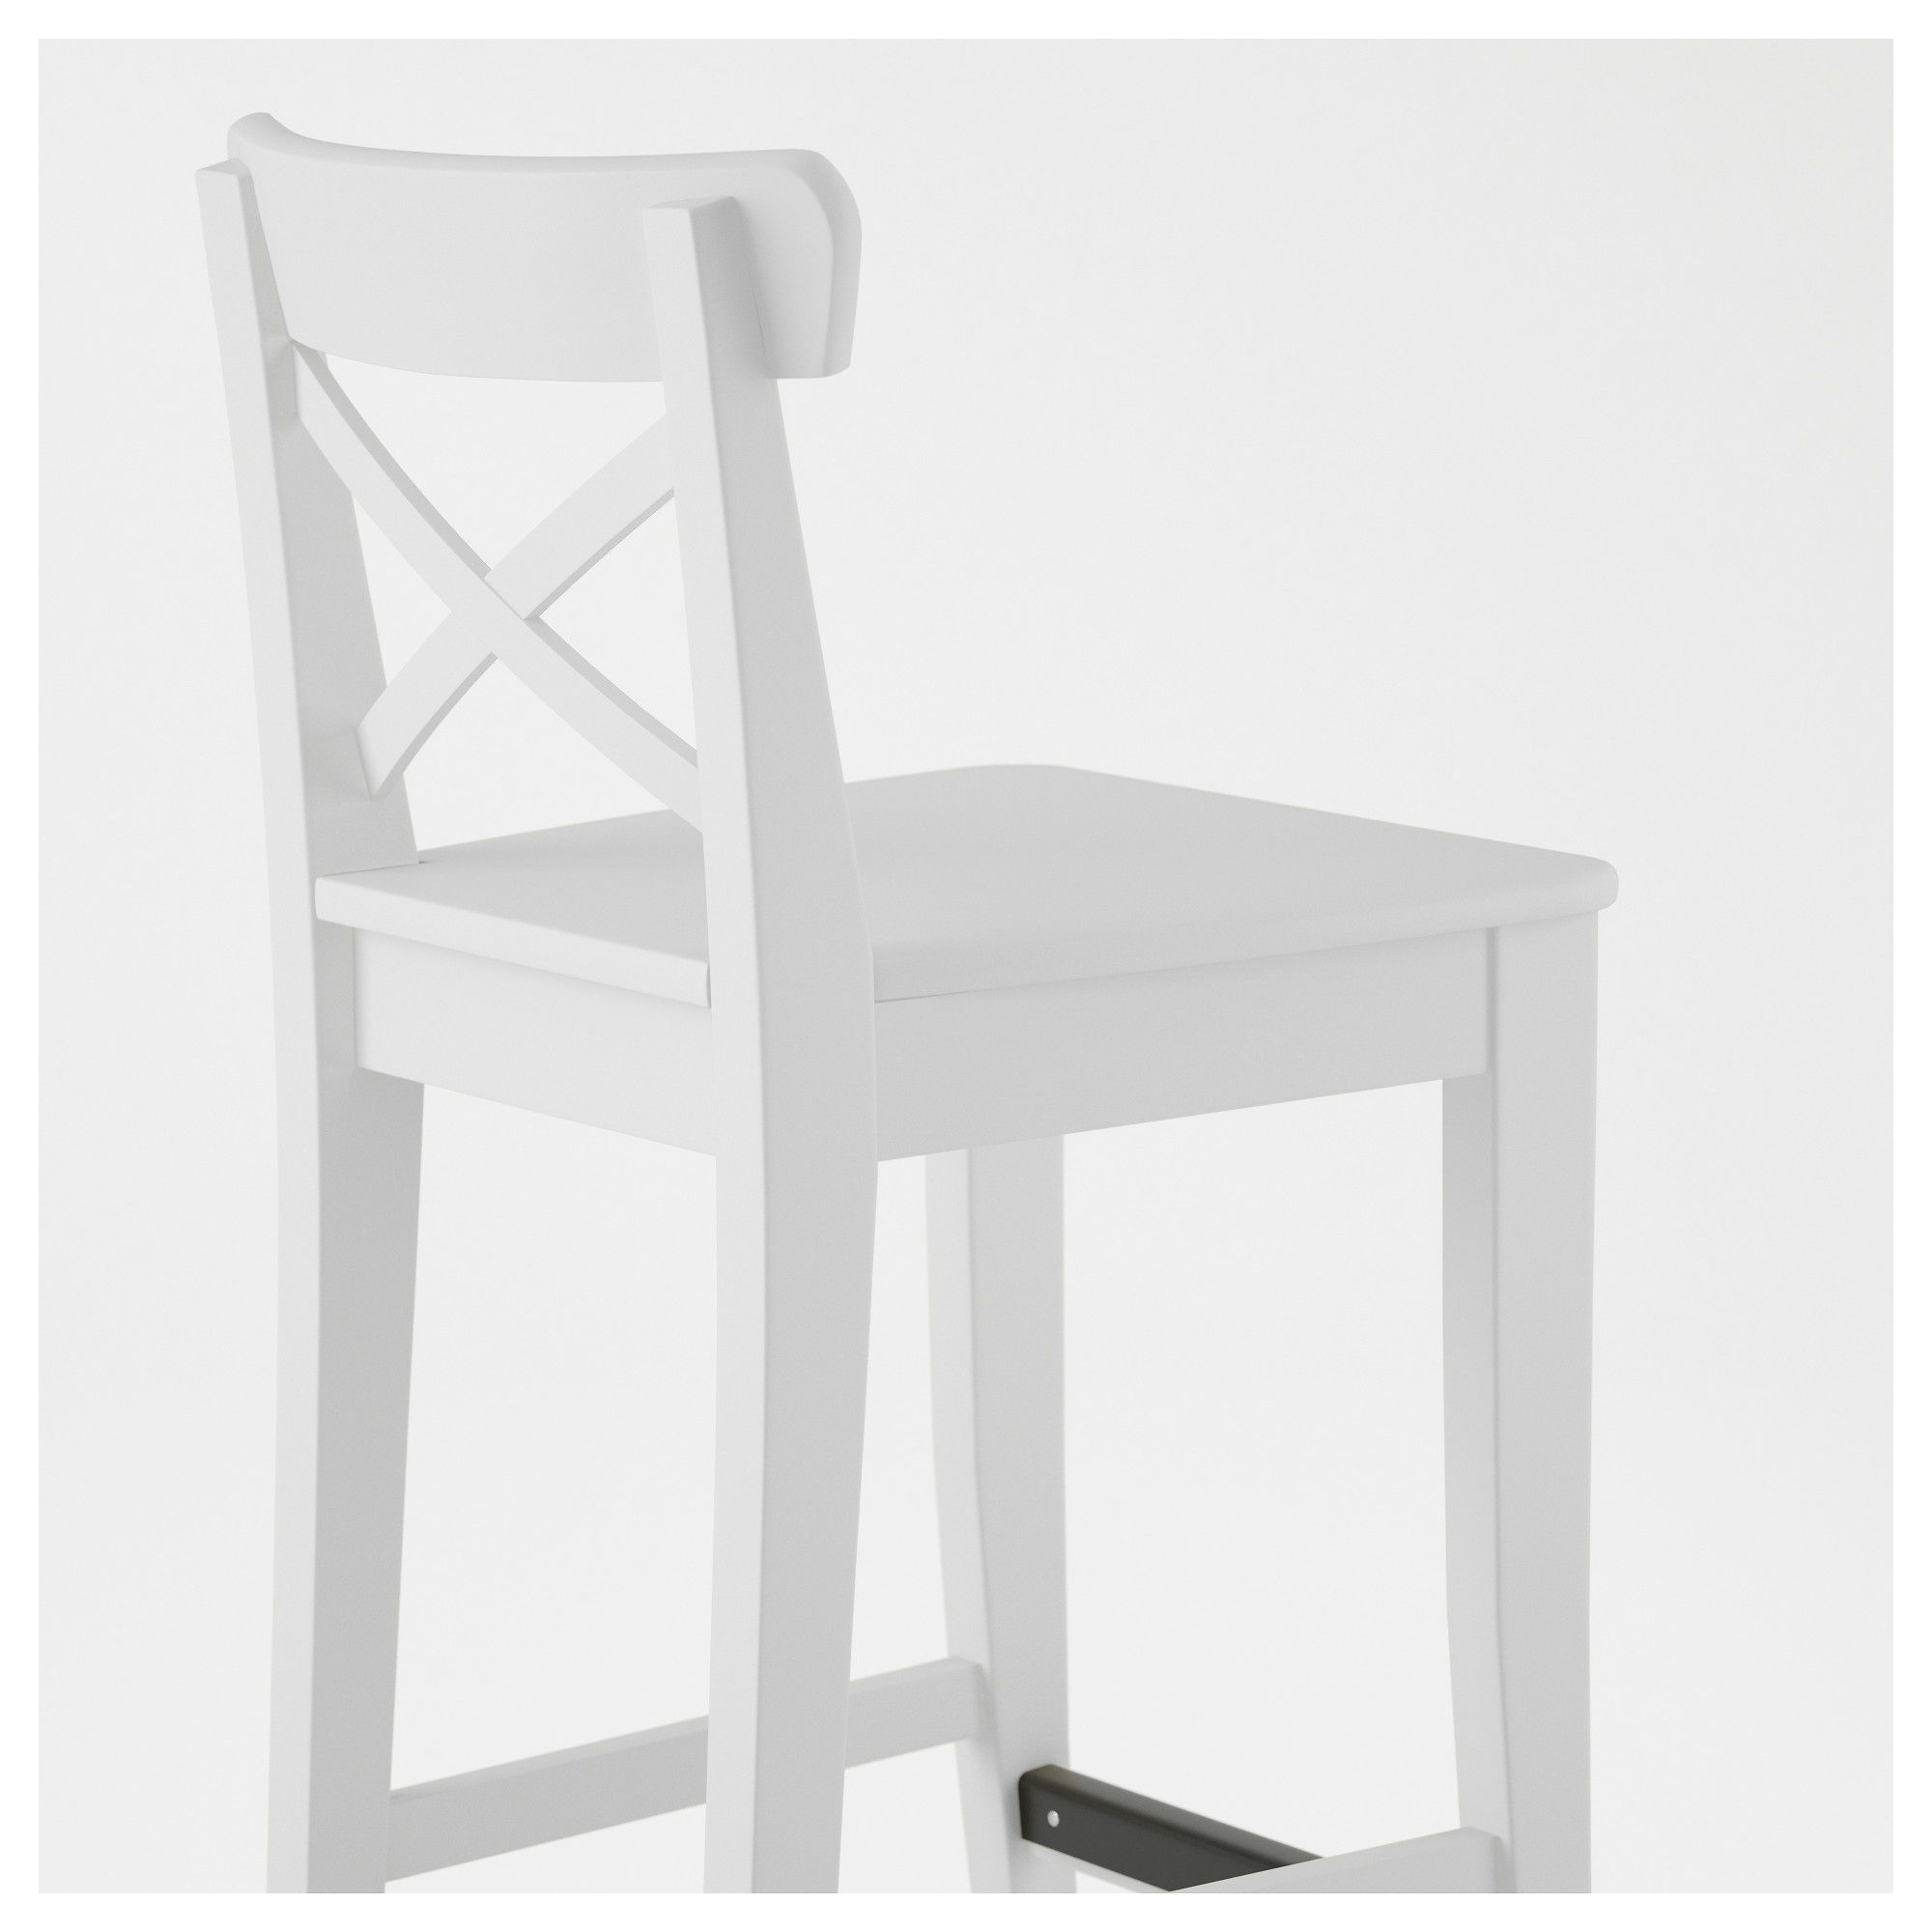 Ikea Ingolf Bar Stool With Backrest White In 2019